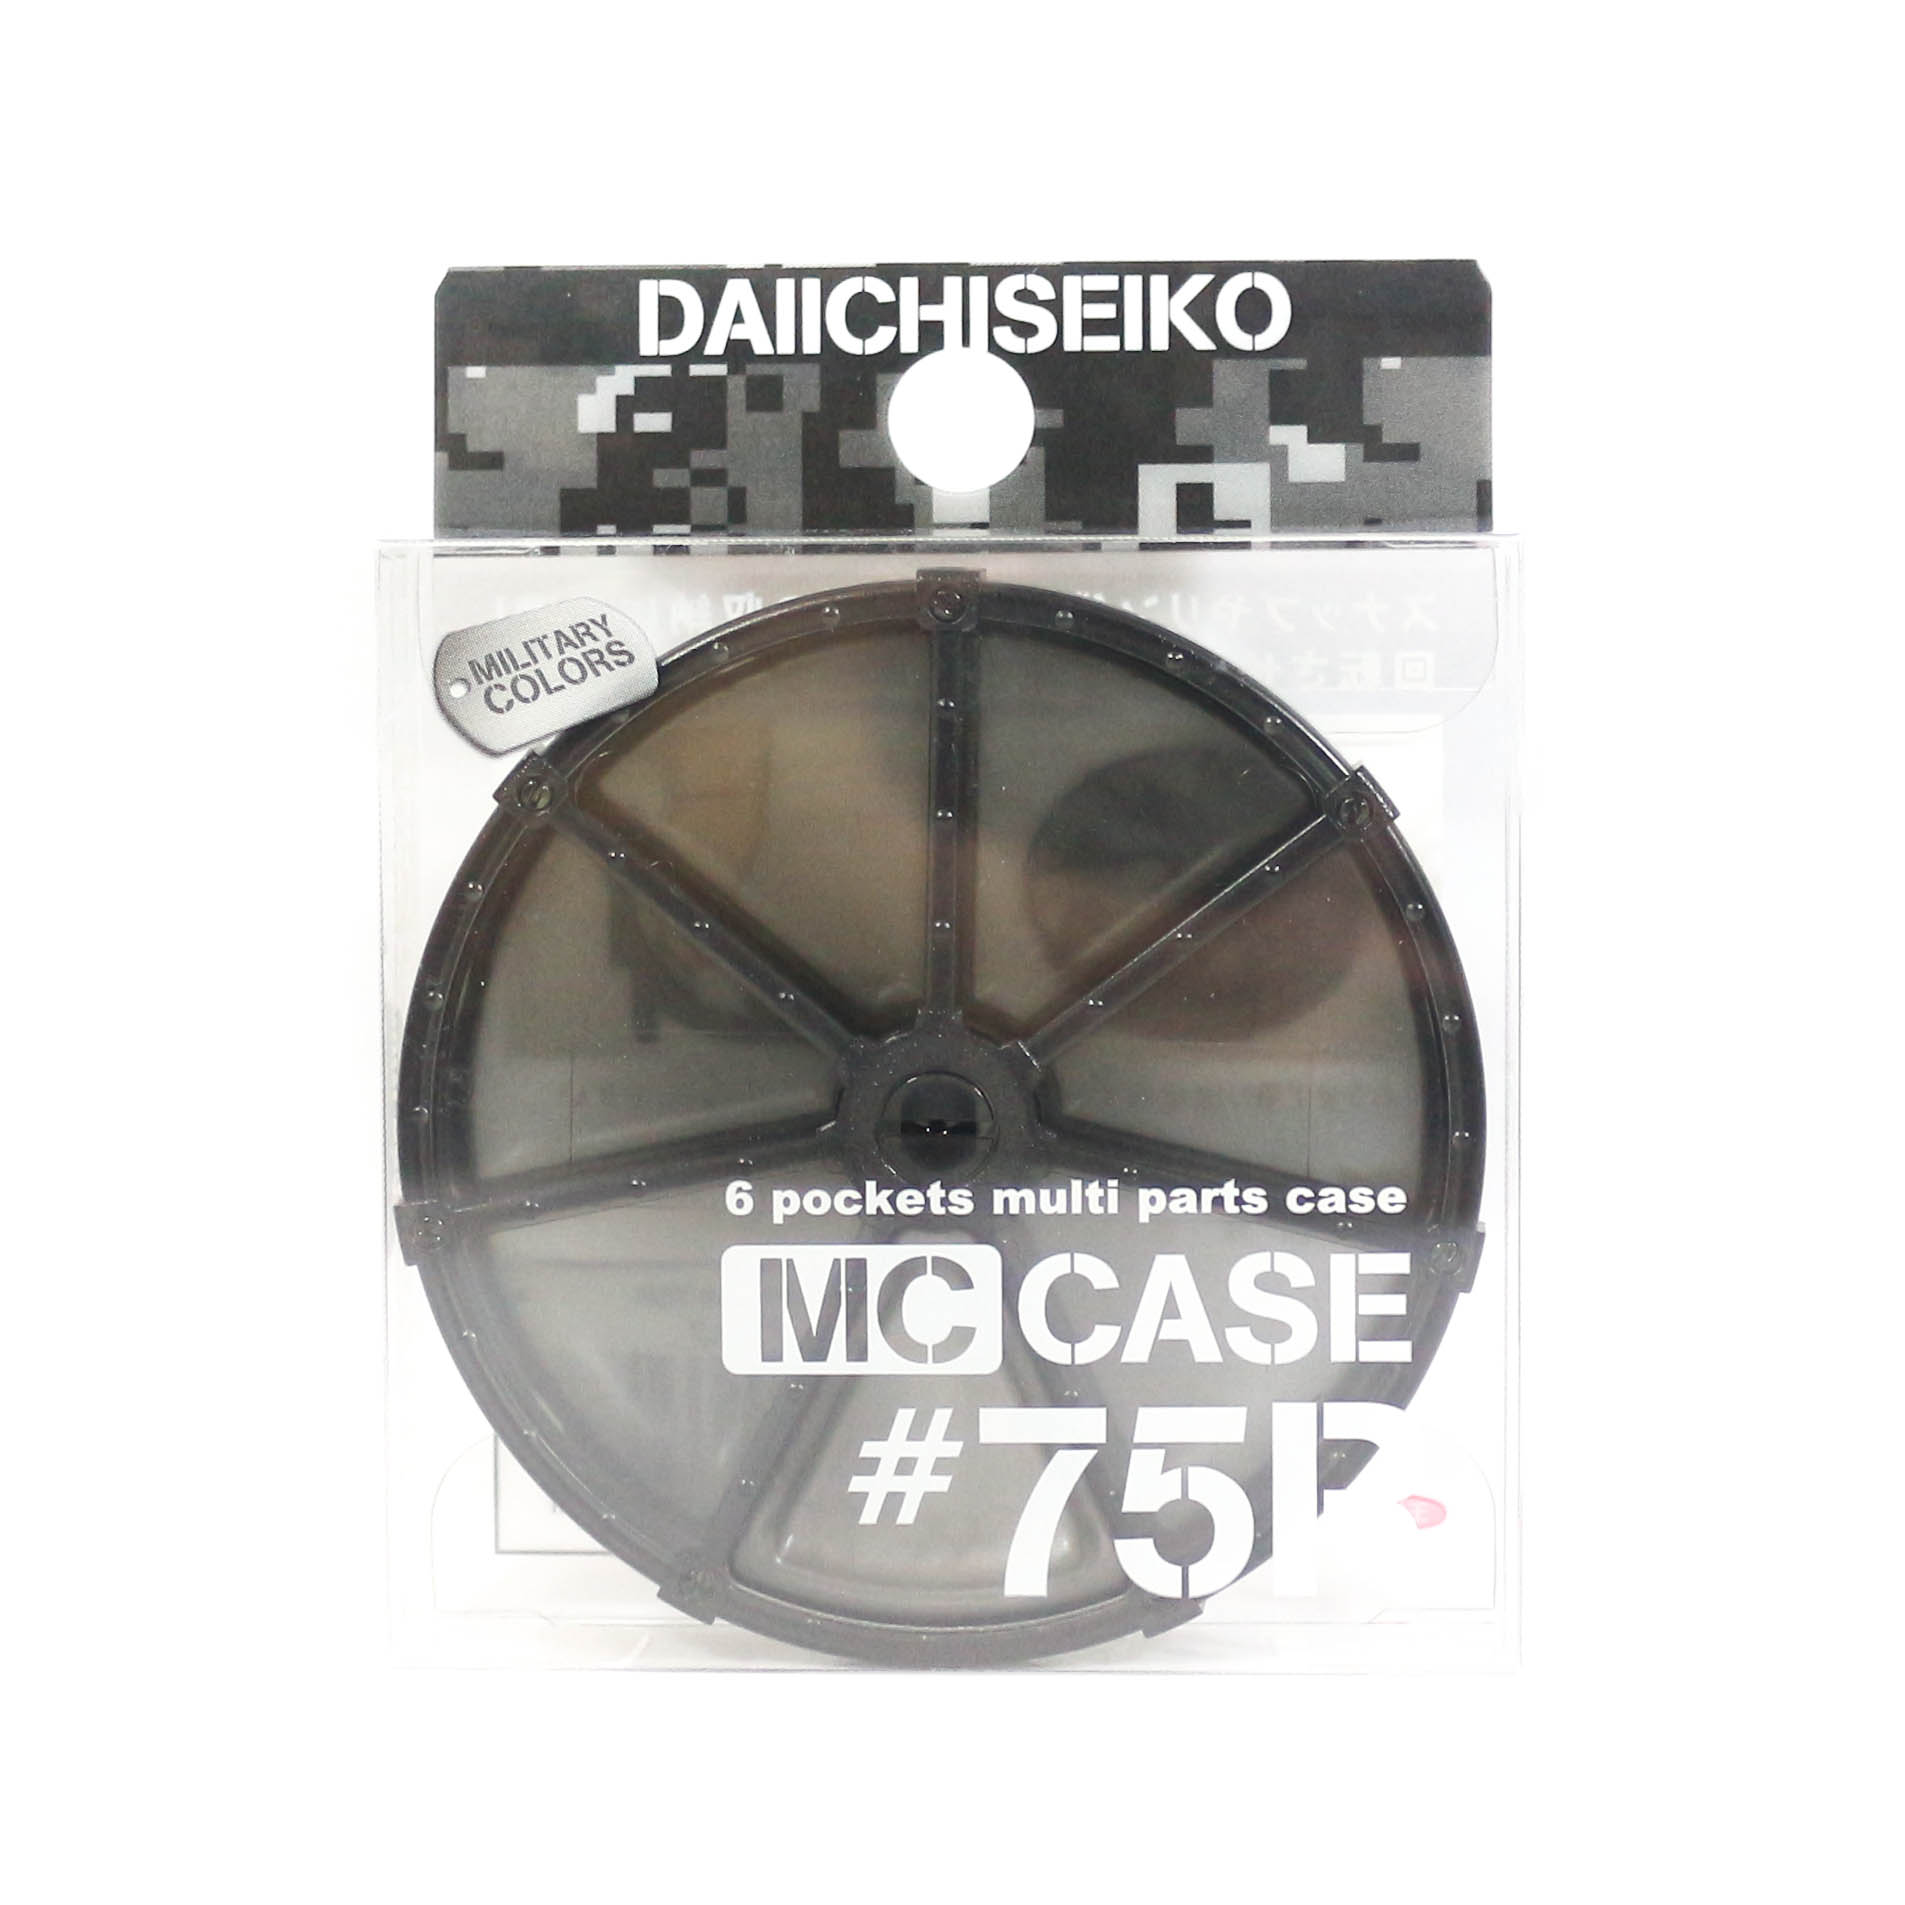 Daiichi #33298 Parts Case 75R 6 Pockets 75 mm Black (2987)